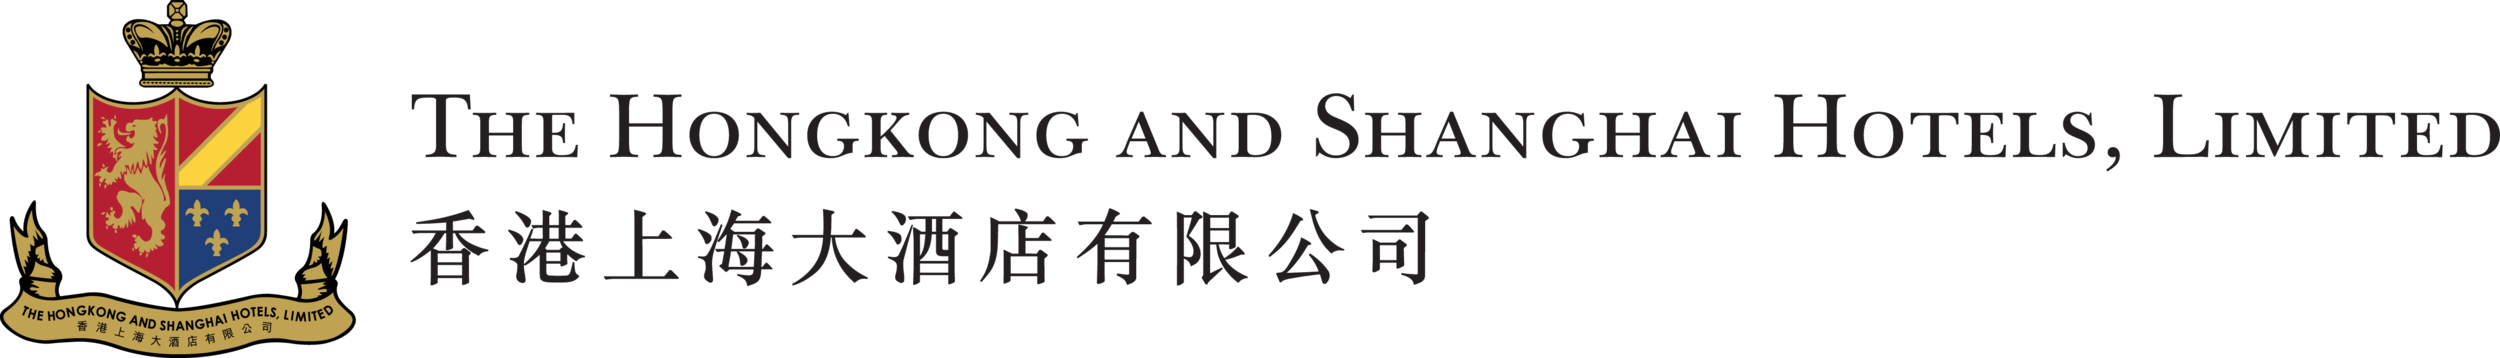 The Hongkong & Shanghai Hotels